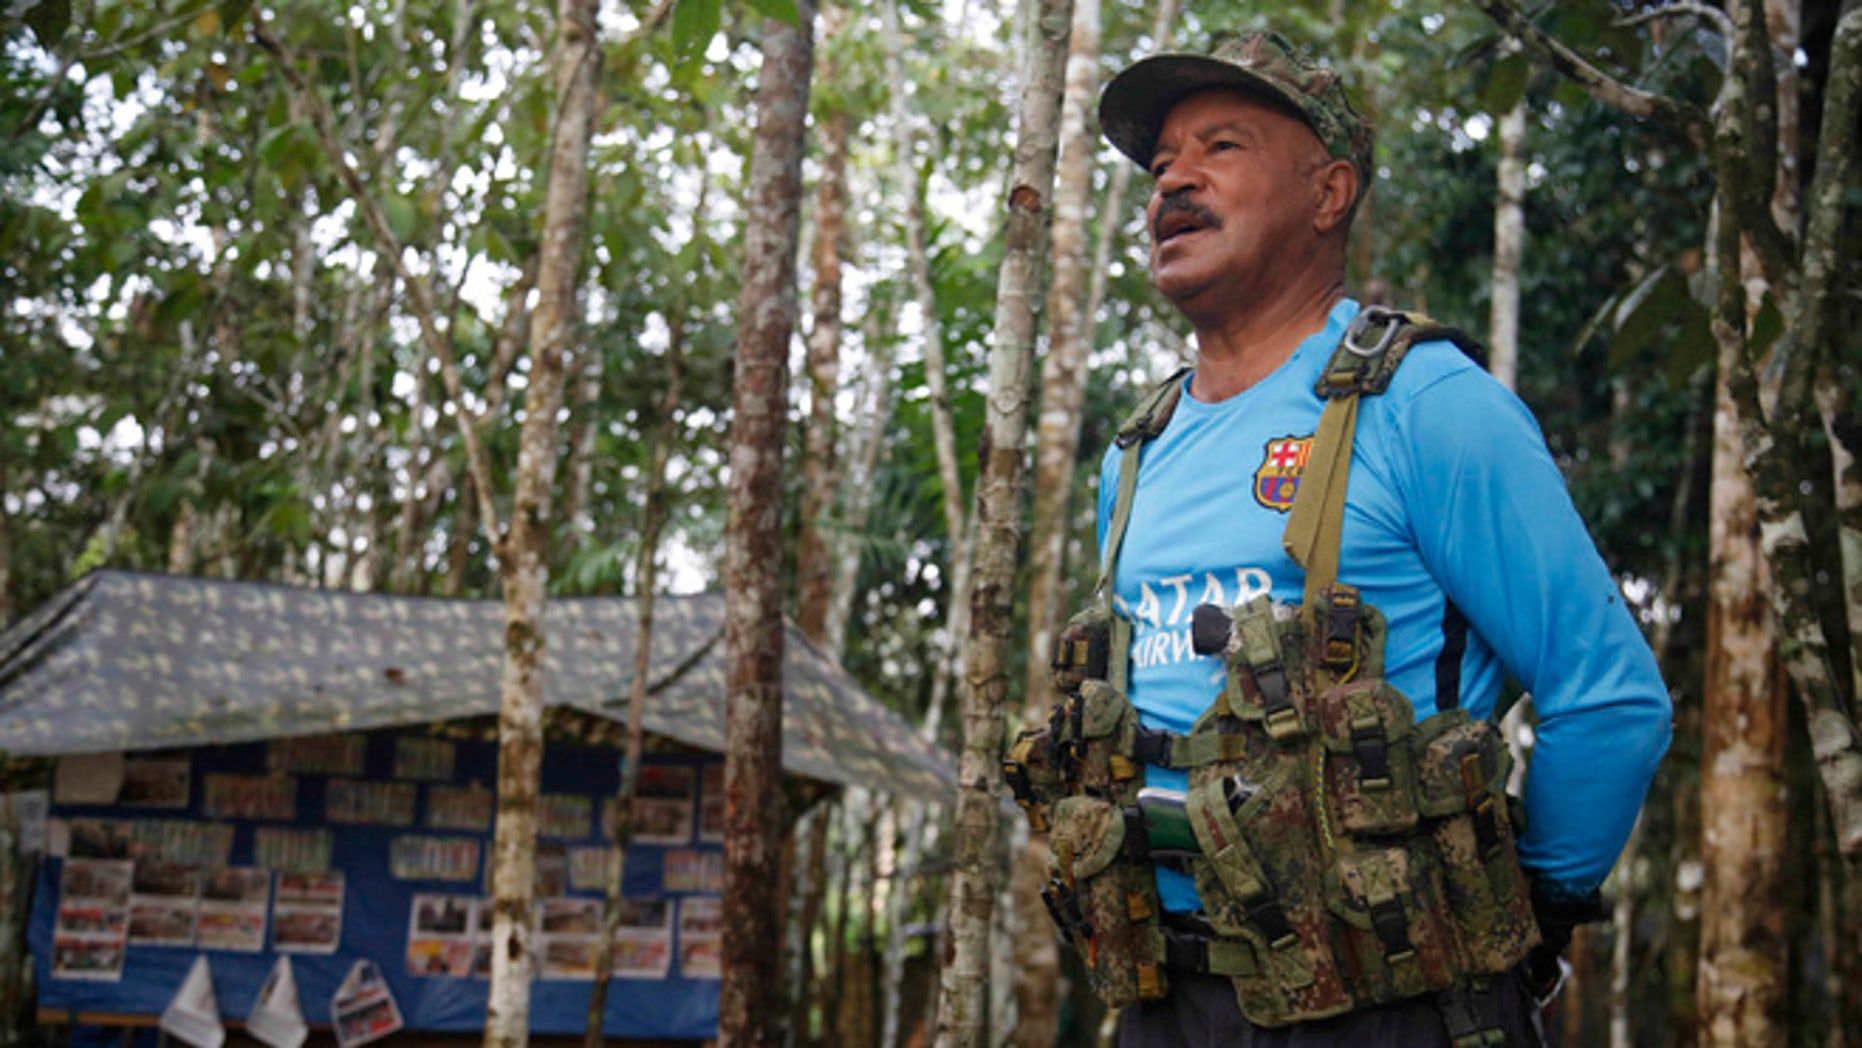 In this Wednesday, Aug. 17, 2016 photo, Martin Corena, acting commander of the Revolutionary Armed Forces of Colombiaââ¬â¢s southern bloc, FARC, addresses his troops in the southern jungles of Putumayo, Colombia. Corena is calling on President Barack Obama to free a guerrilla leader jailed for more than a decade in the U.S. Corena said Ricardo Palmeraââ¬â¢s 60-year sentence in connection to the FARCââ¬â¢s holding captive of three American defense contracts was incompatible with Obamaââ¬â¢s support for a peace deal. (AP Photo/Fernando Vergara)